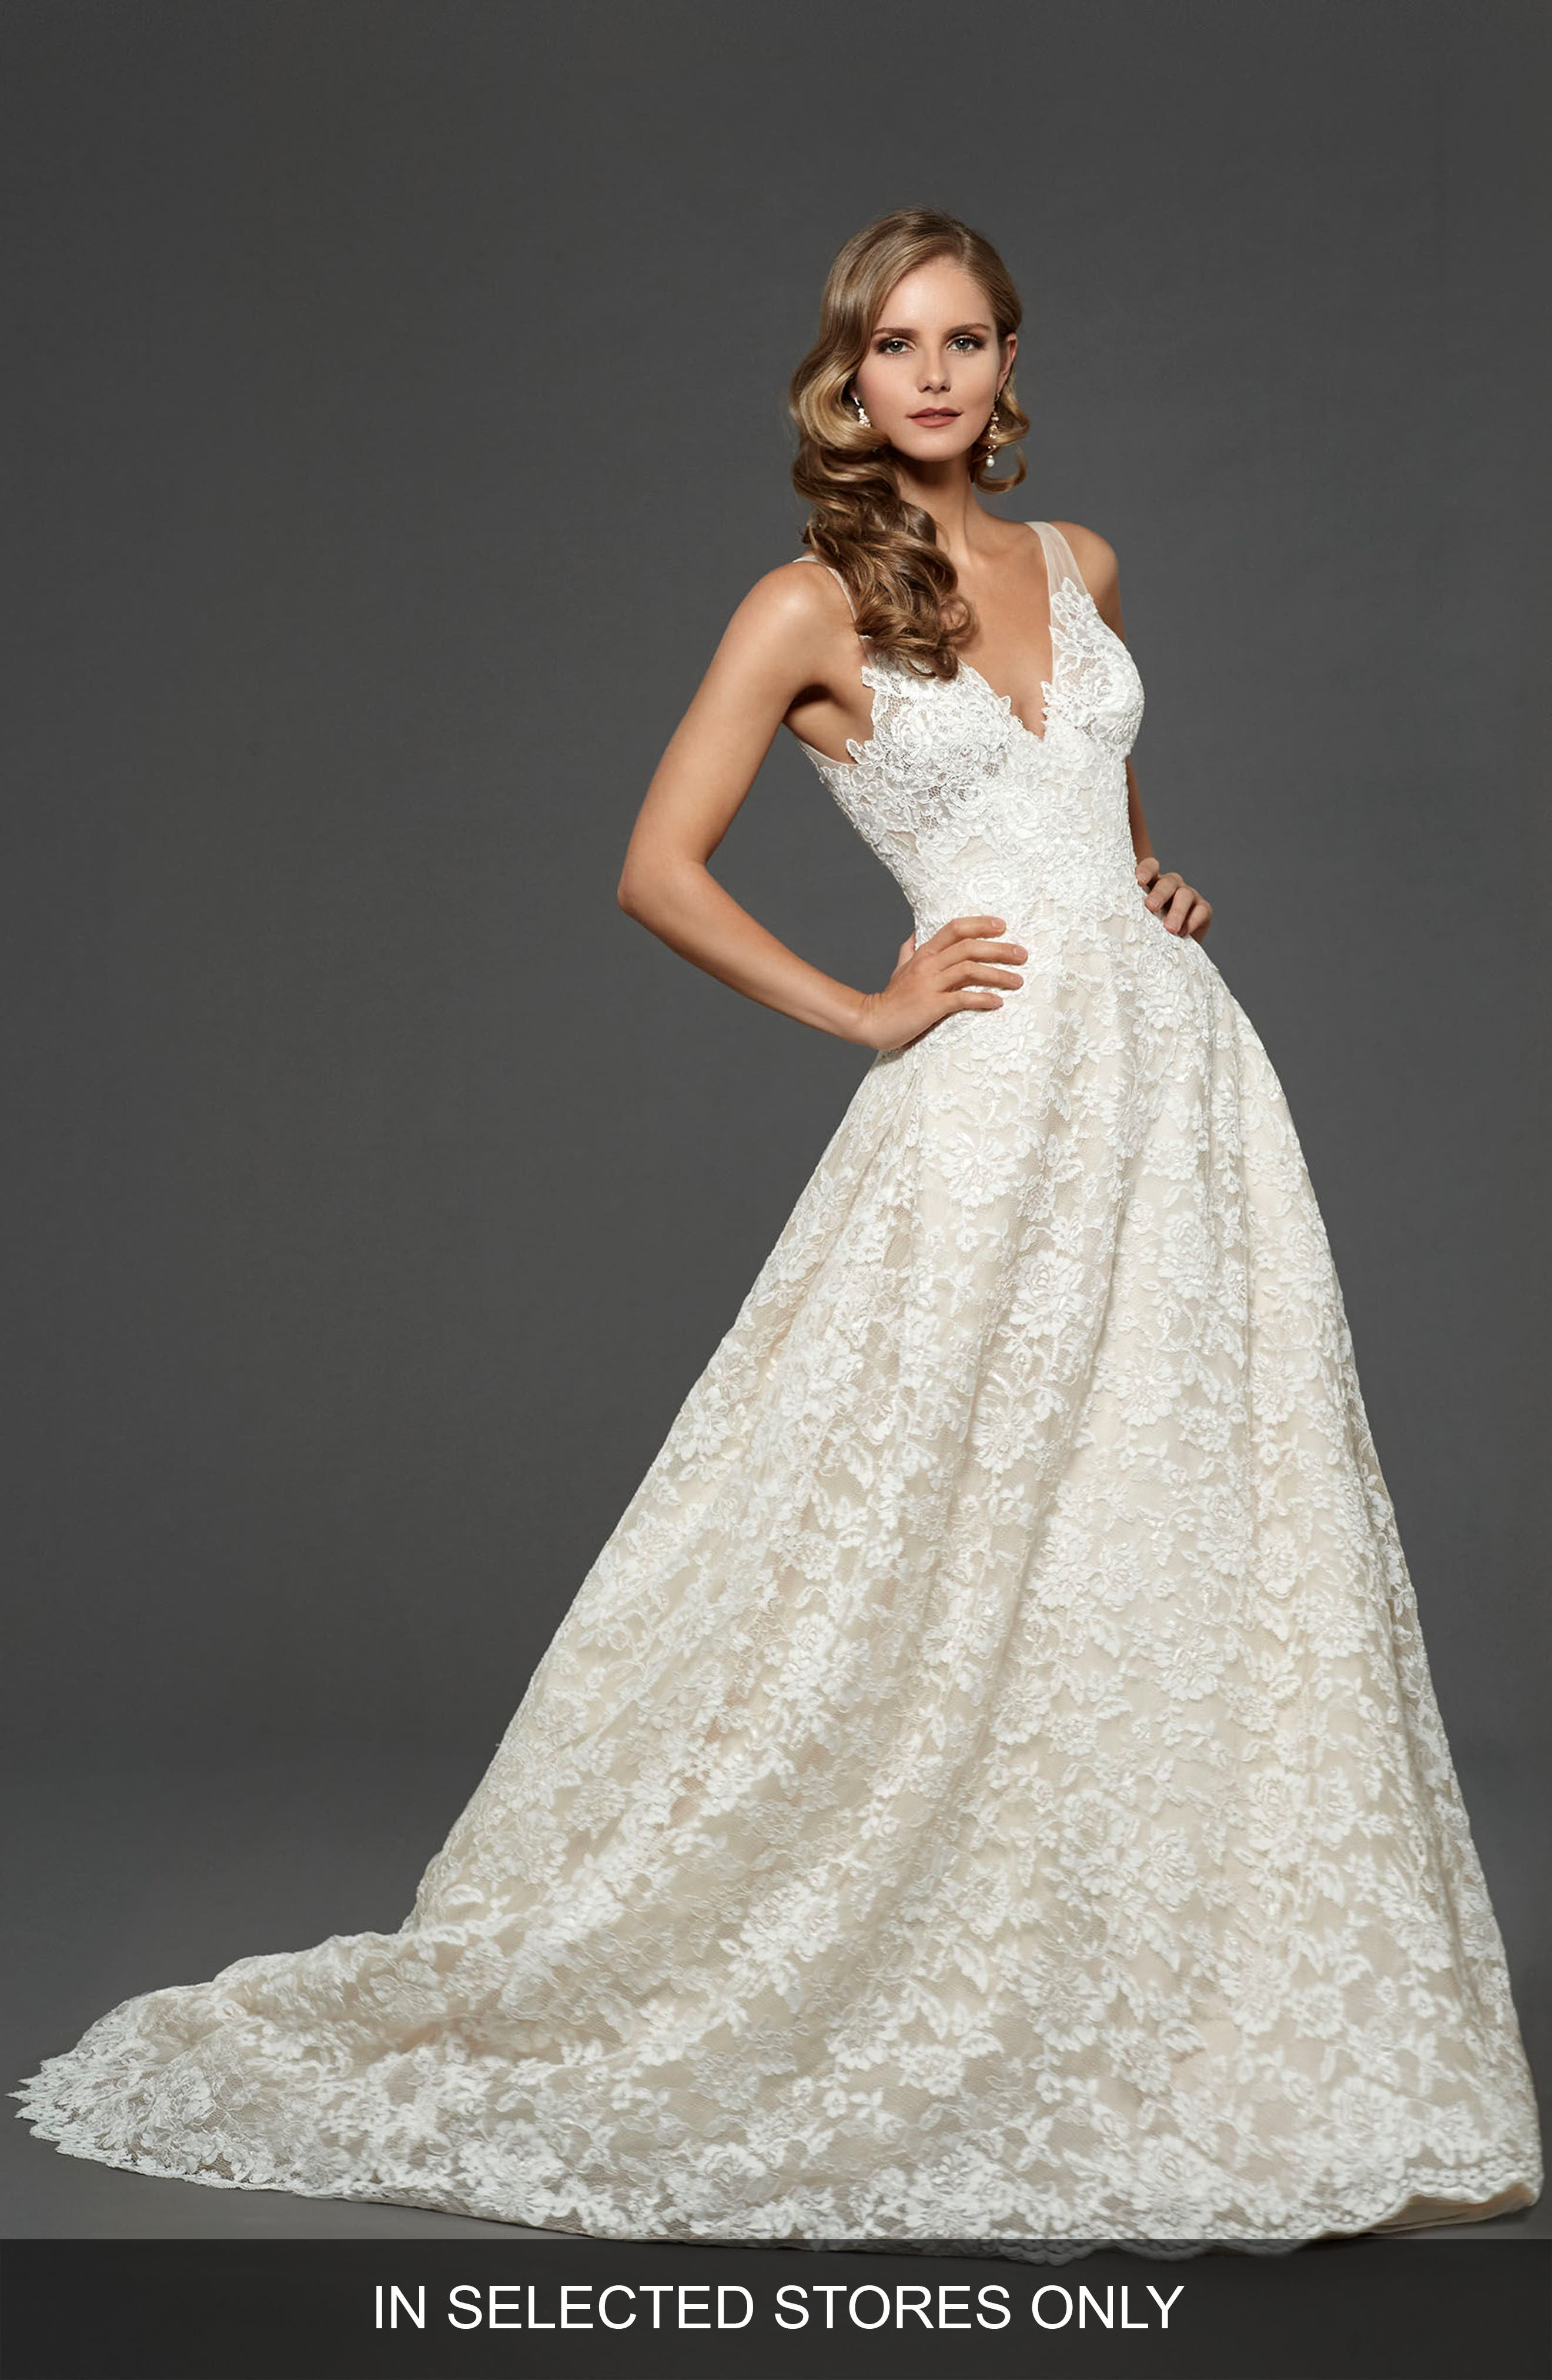 Suzanna Allover Lace Gown,                         Main,                         color, 900